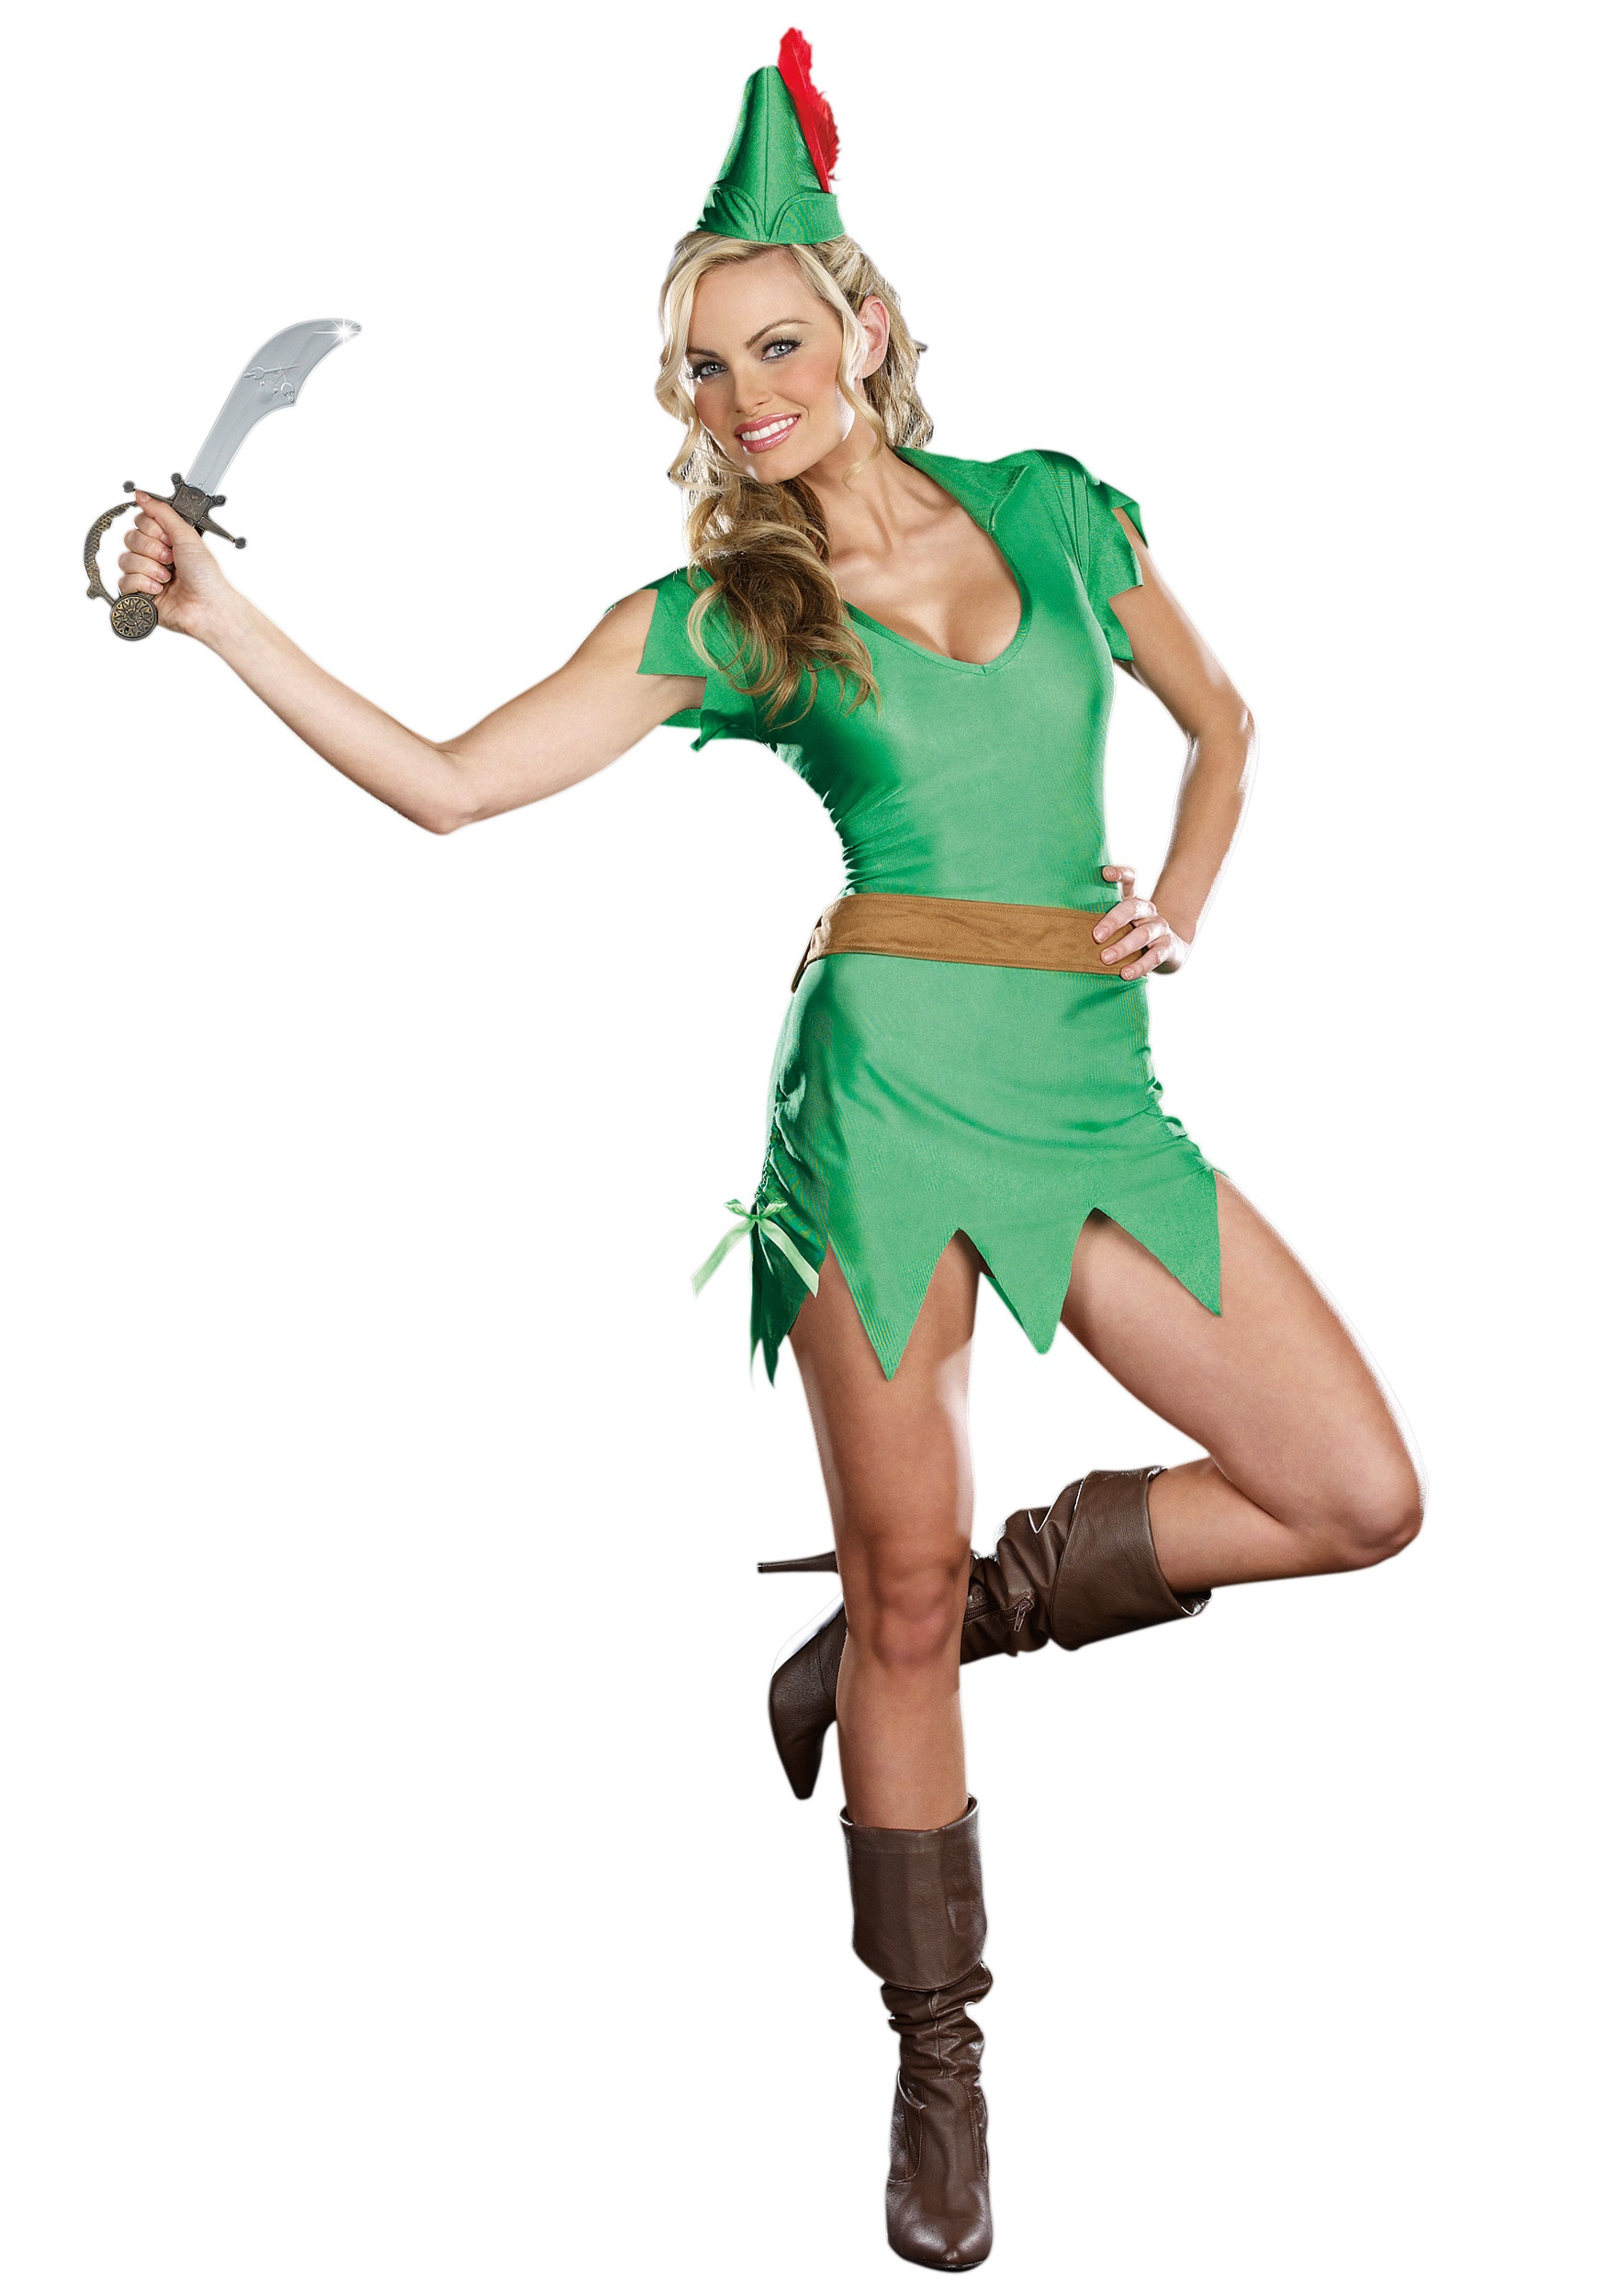 sassy peter pan costume. Black Bedroom Furniture Sets. Home Design Ideas